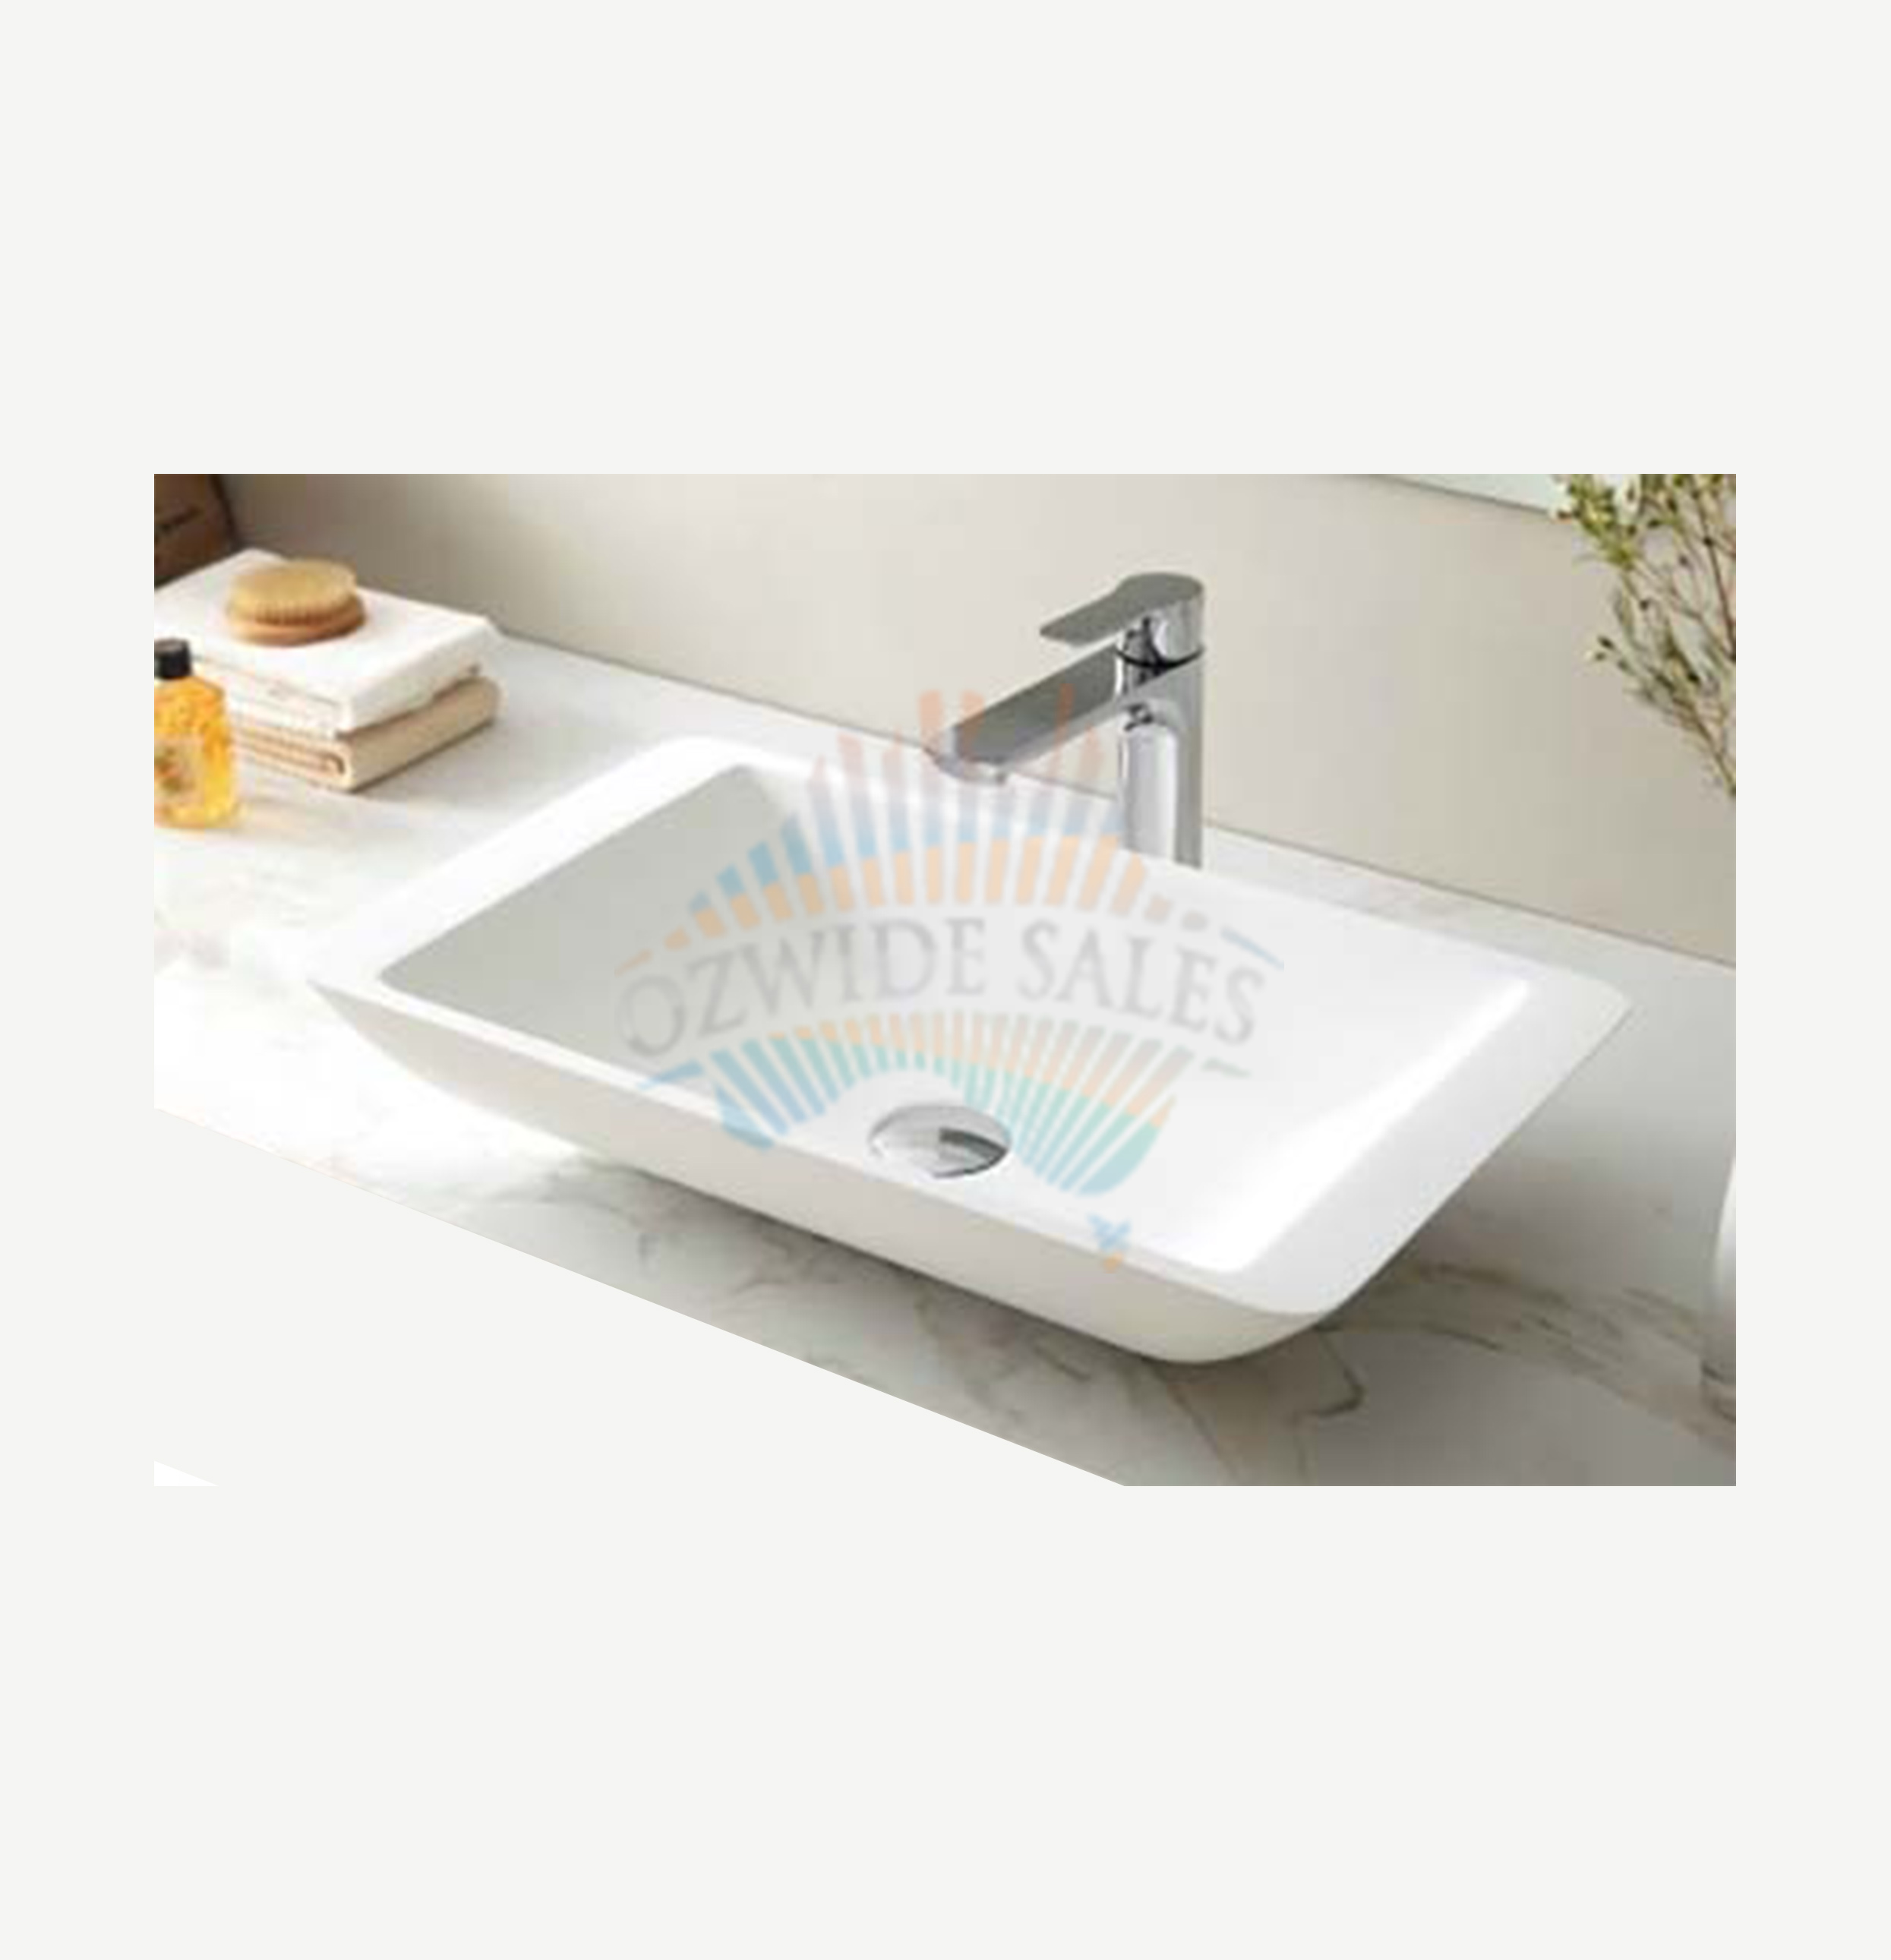 Shallow Laundry Sink : Details about Stone Marble Square Basin Shallow Design Gloss Finish ...